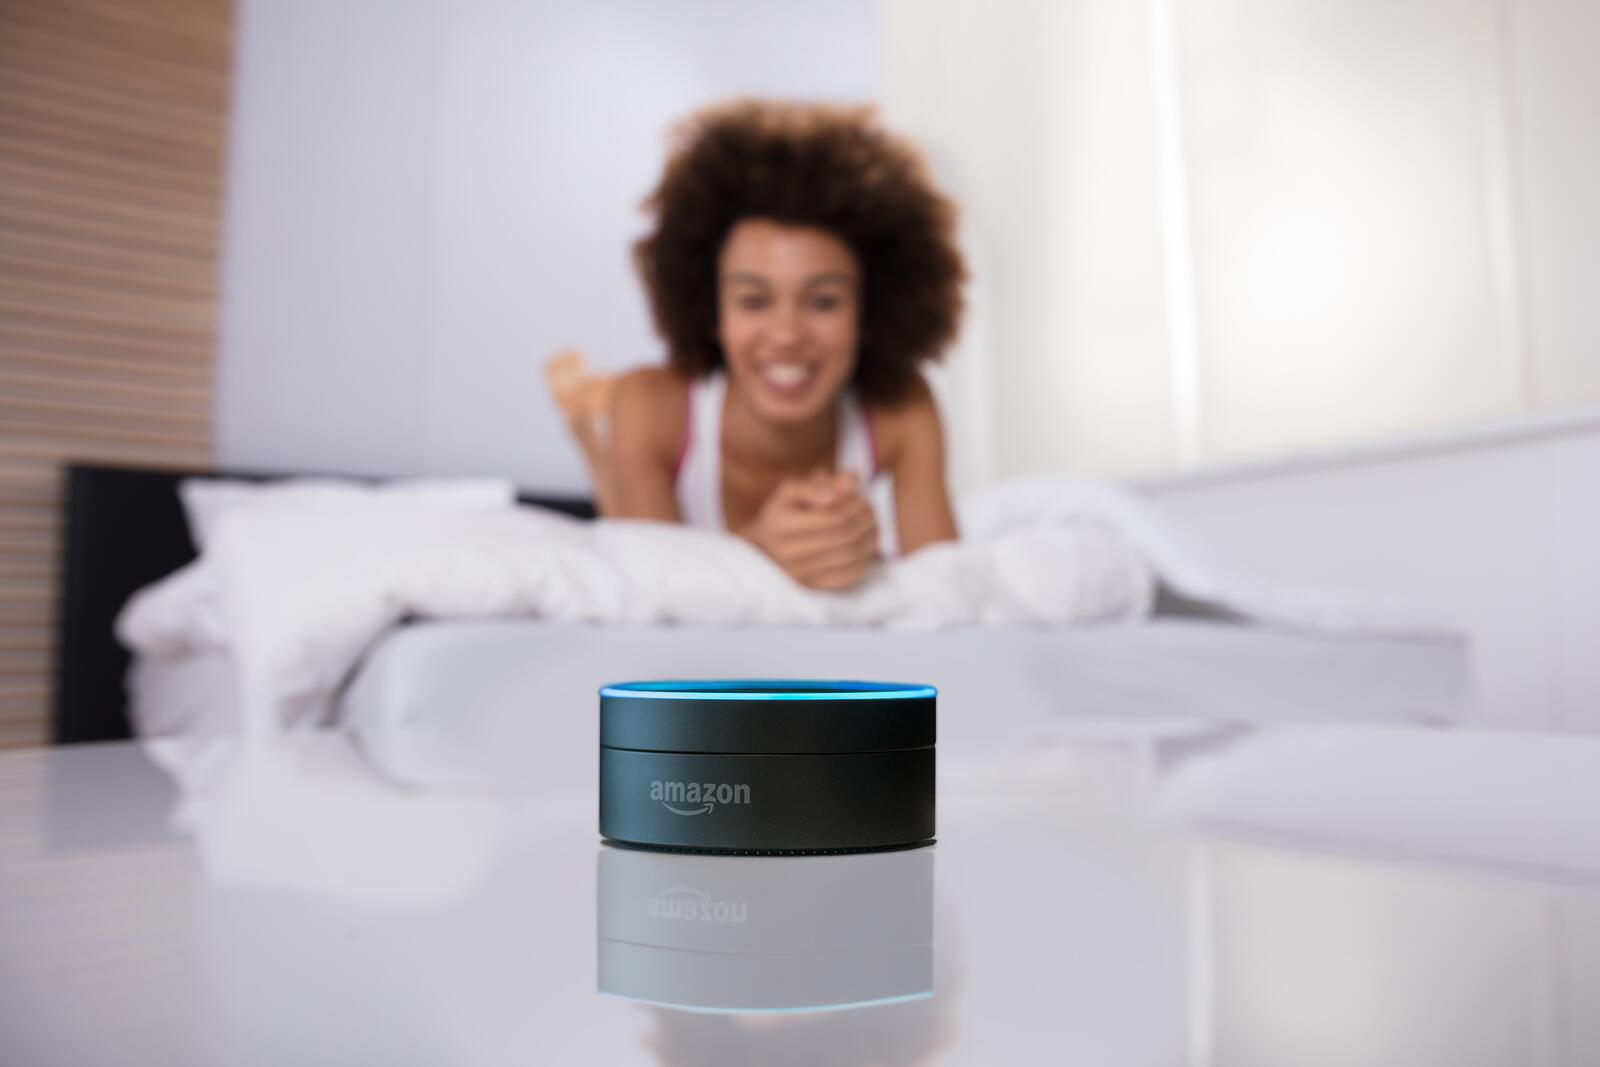 Voice Tech Trends 2018 - Consumer Behavior & Brand Implications in the US, UK and Germany Report